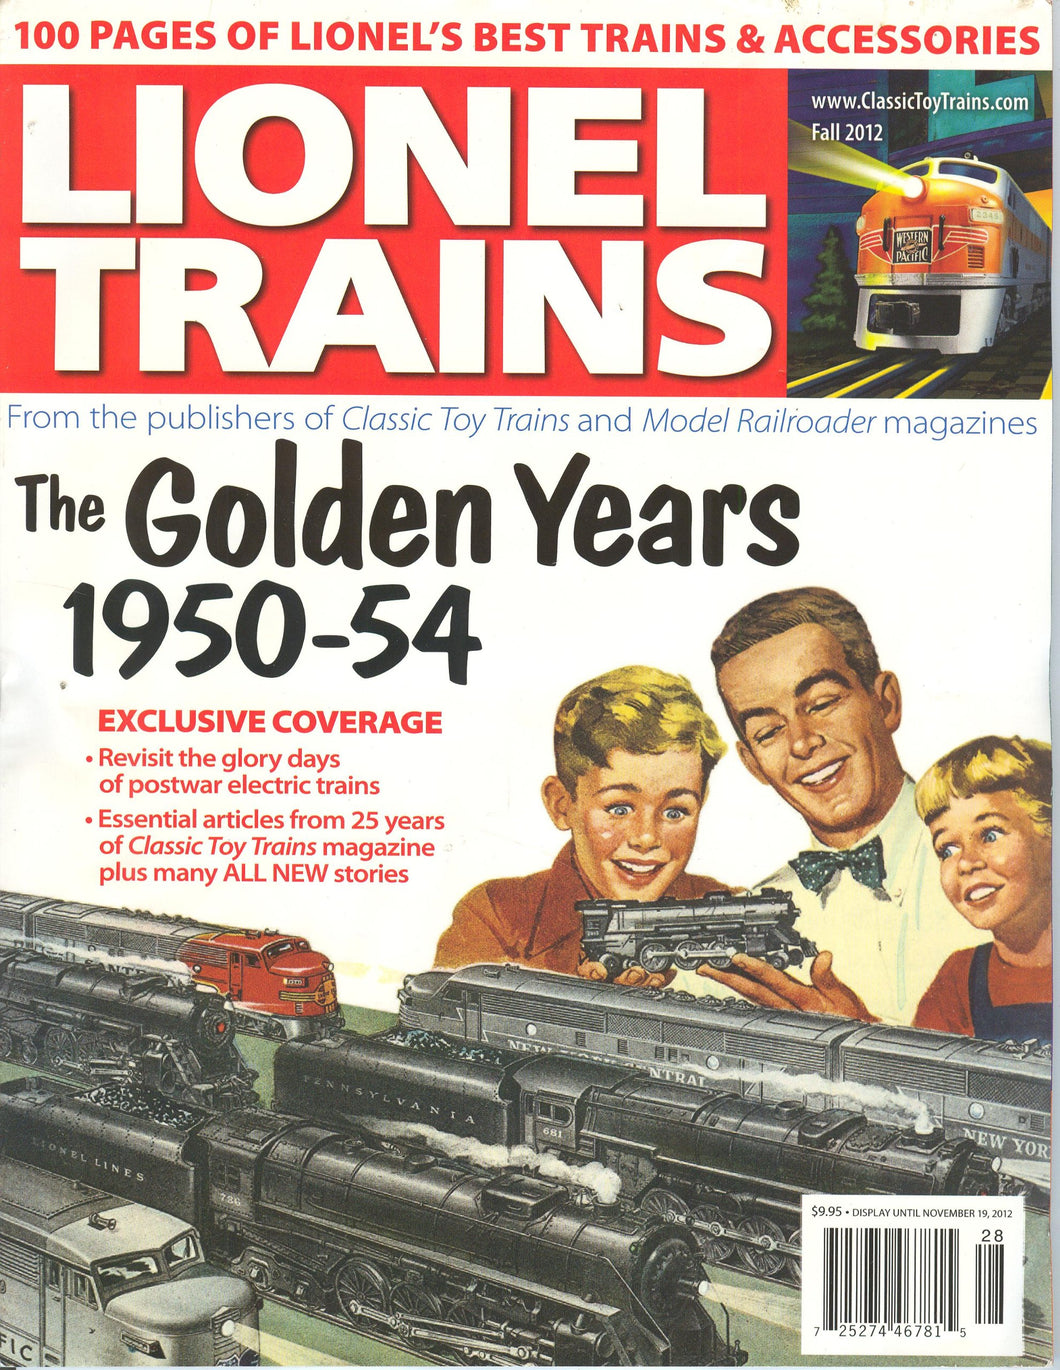 Lionel Trains The Golden Years 1950-54 2012 Publishers of Classic Toy Trains 100